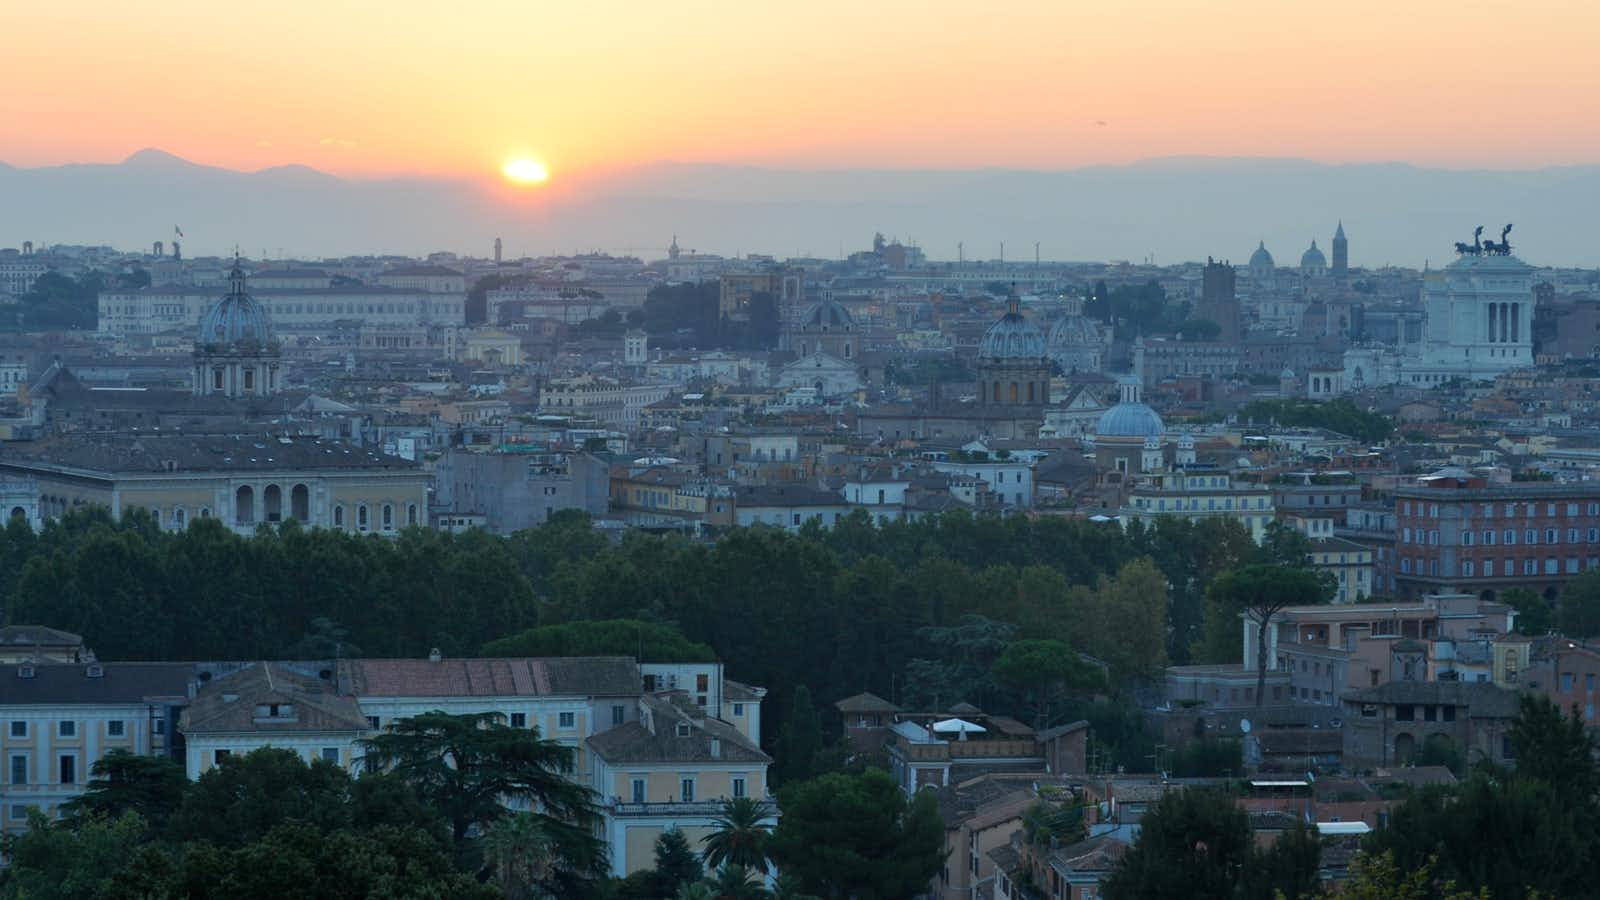 Rome at Sunrise